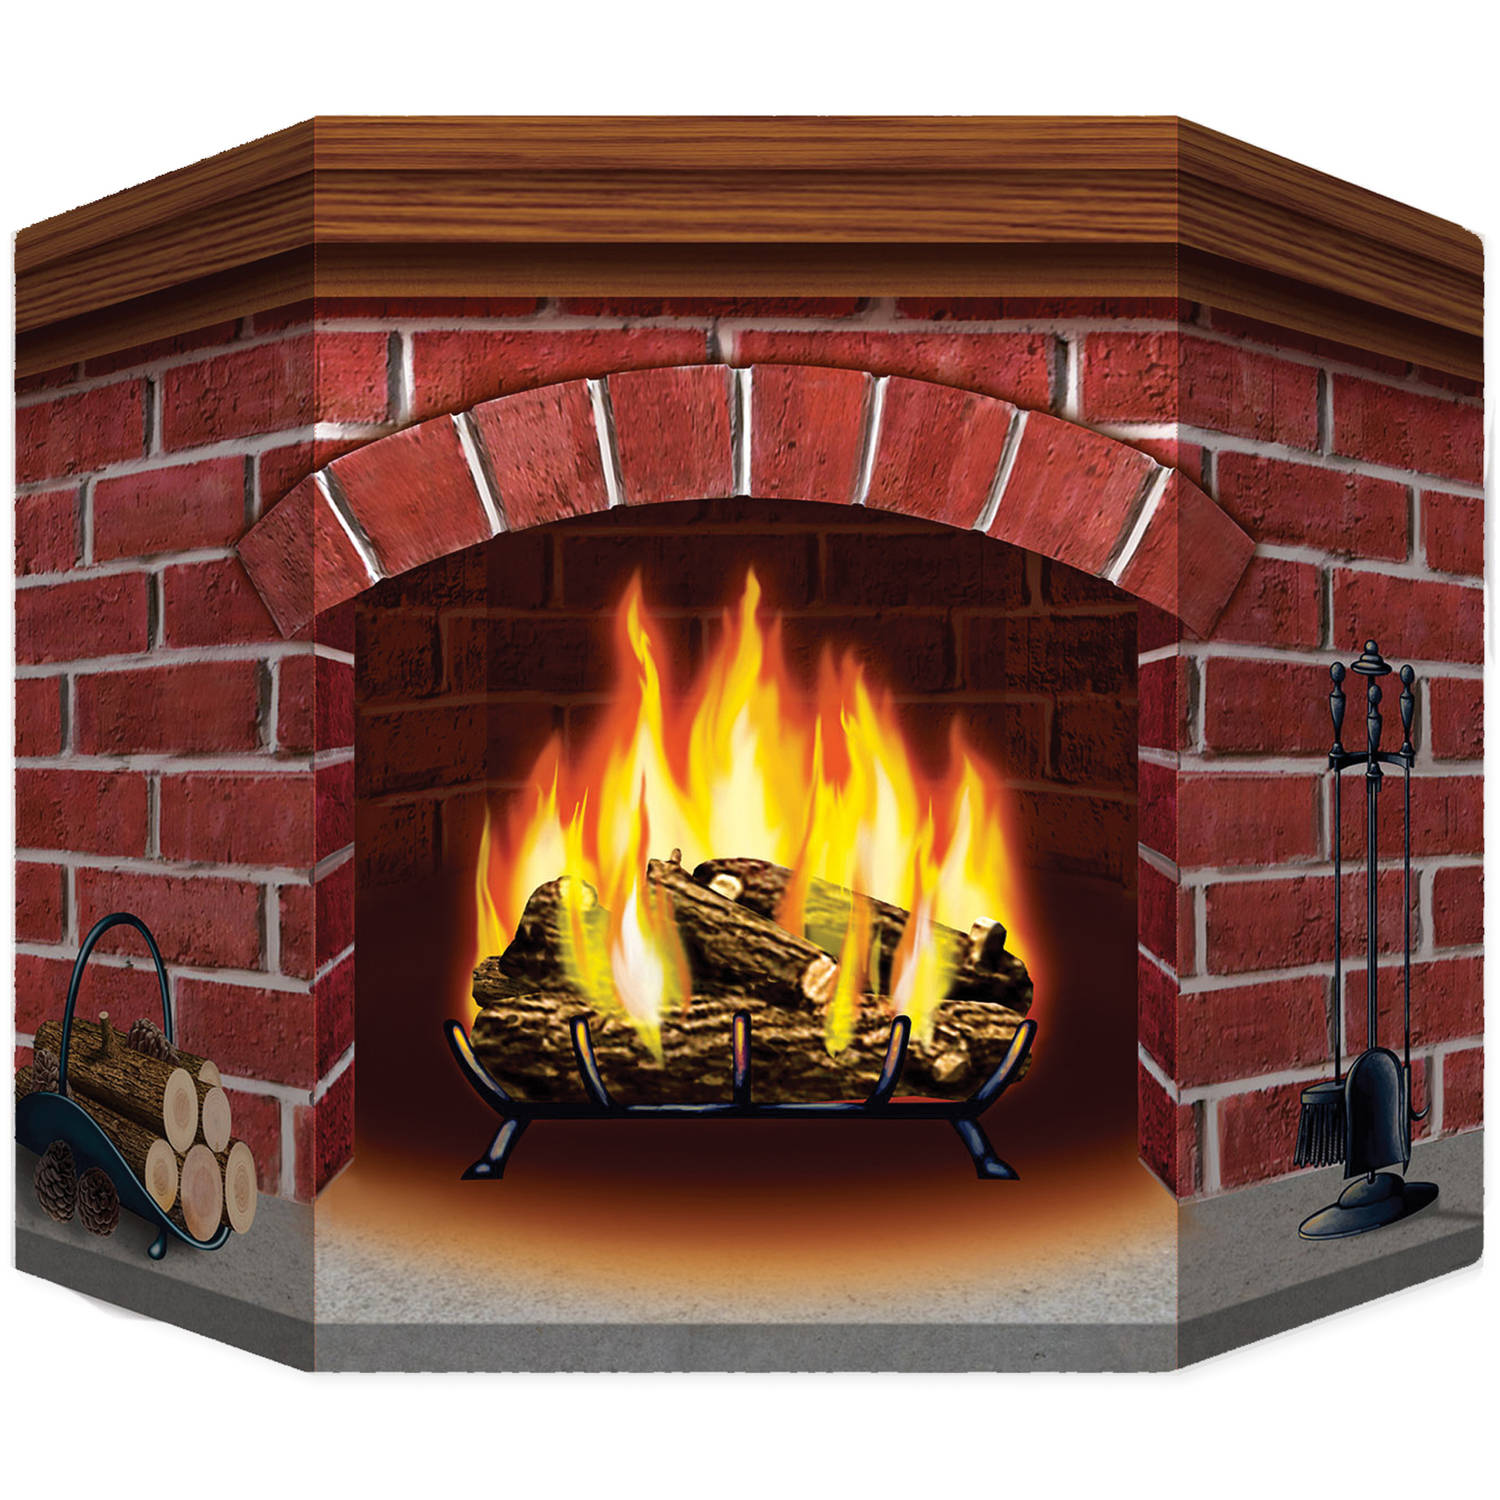 Brick Fireplace Standup Halloween Decoration